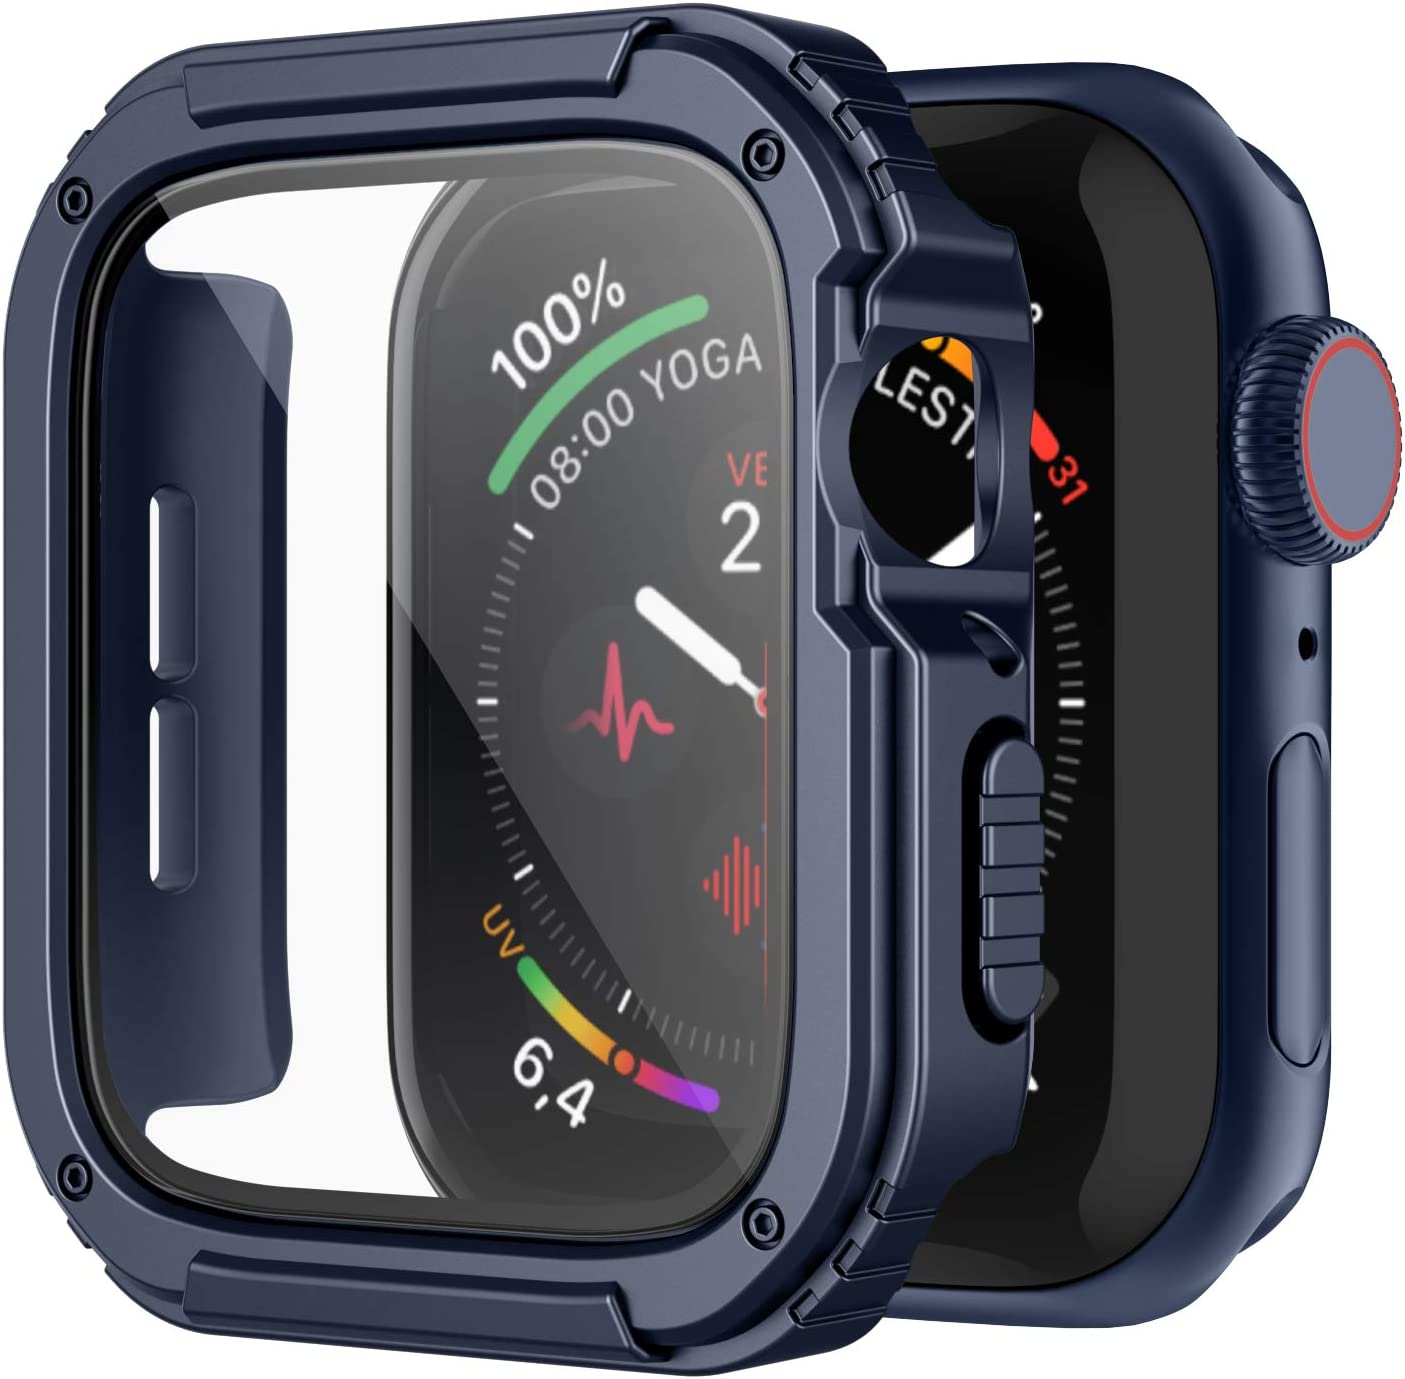 Recoppa Rugged Apple Watch Case 44mm Series SE 6/5/4 with Screen Protector, Durable Military Grade Quattro Pro Series Drop-Proof Protective Cover Full Coverage Shock-Proof Bumper for Men iWatch(Blue)